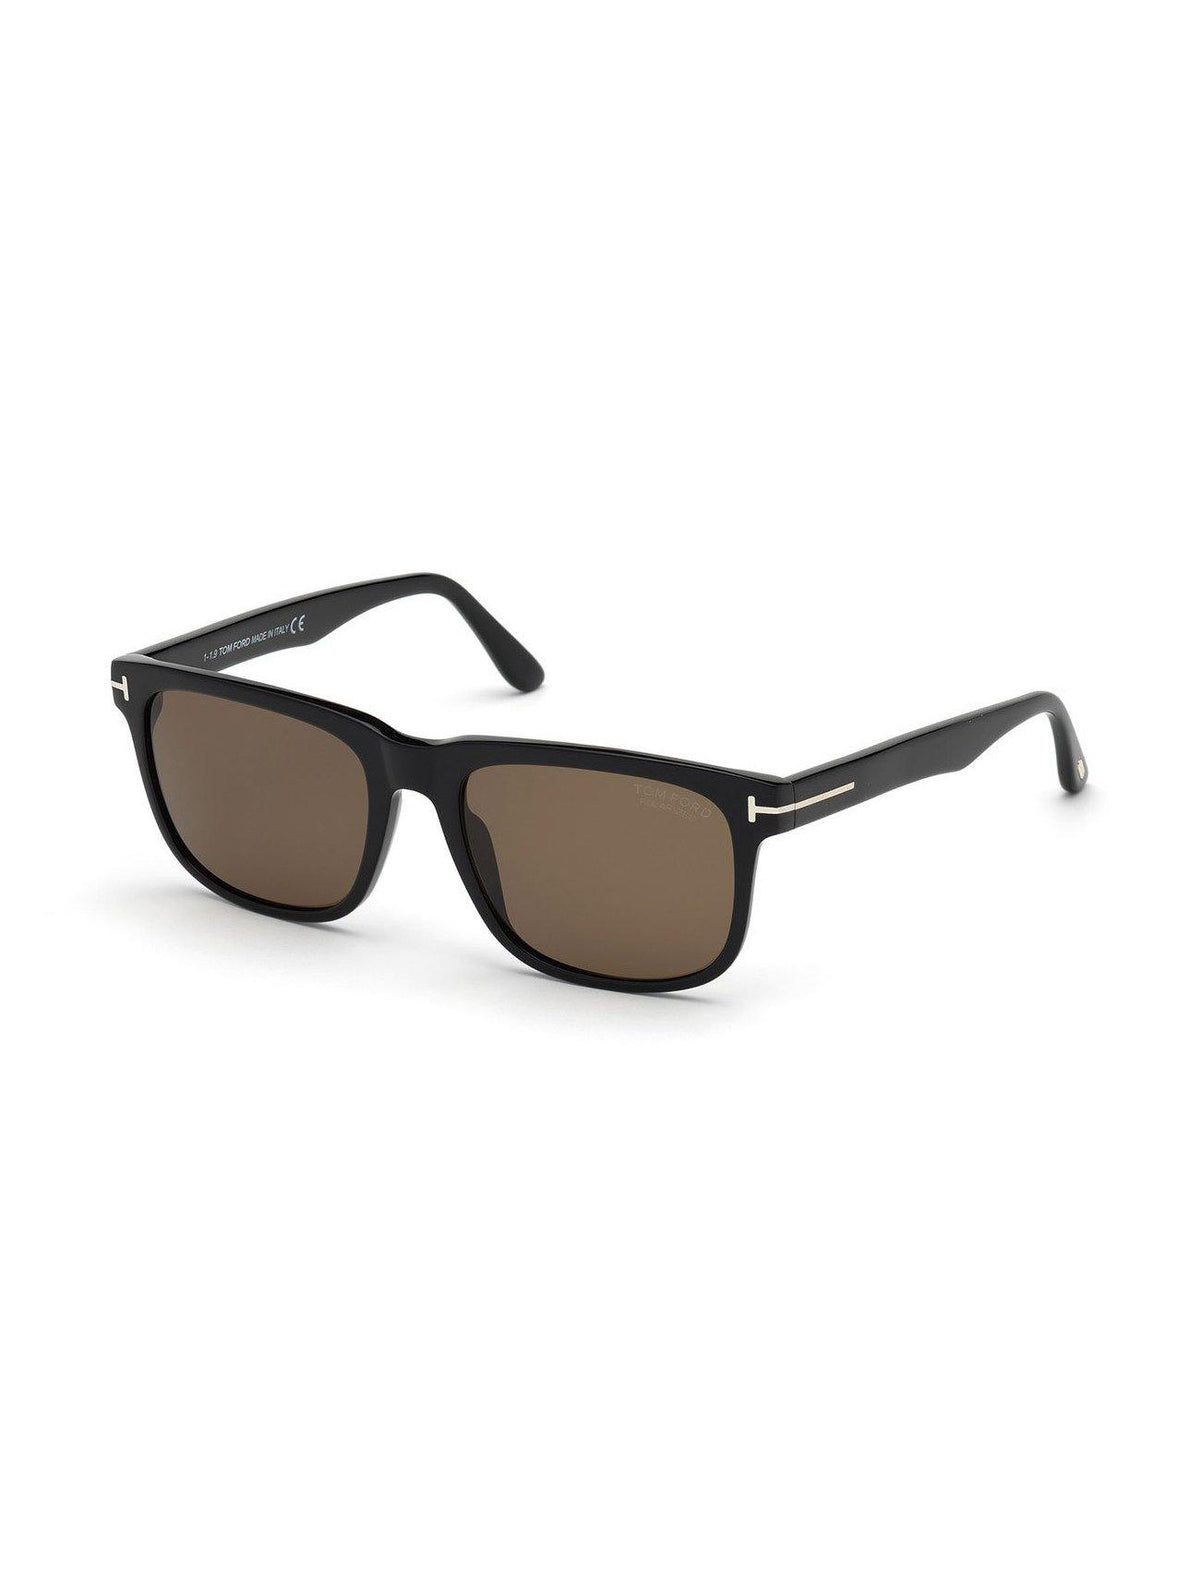 Stephenson Sunglasses